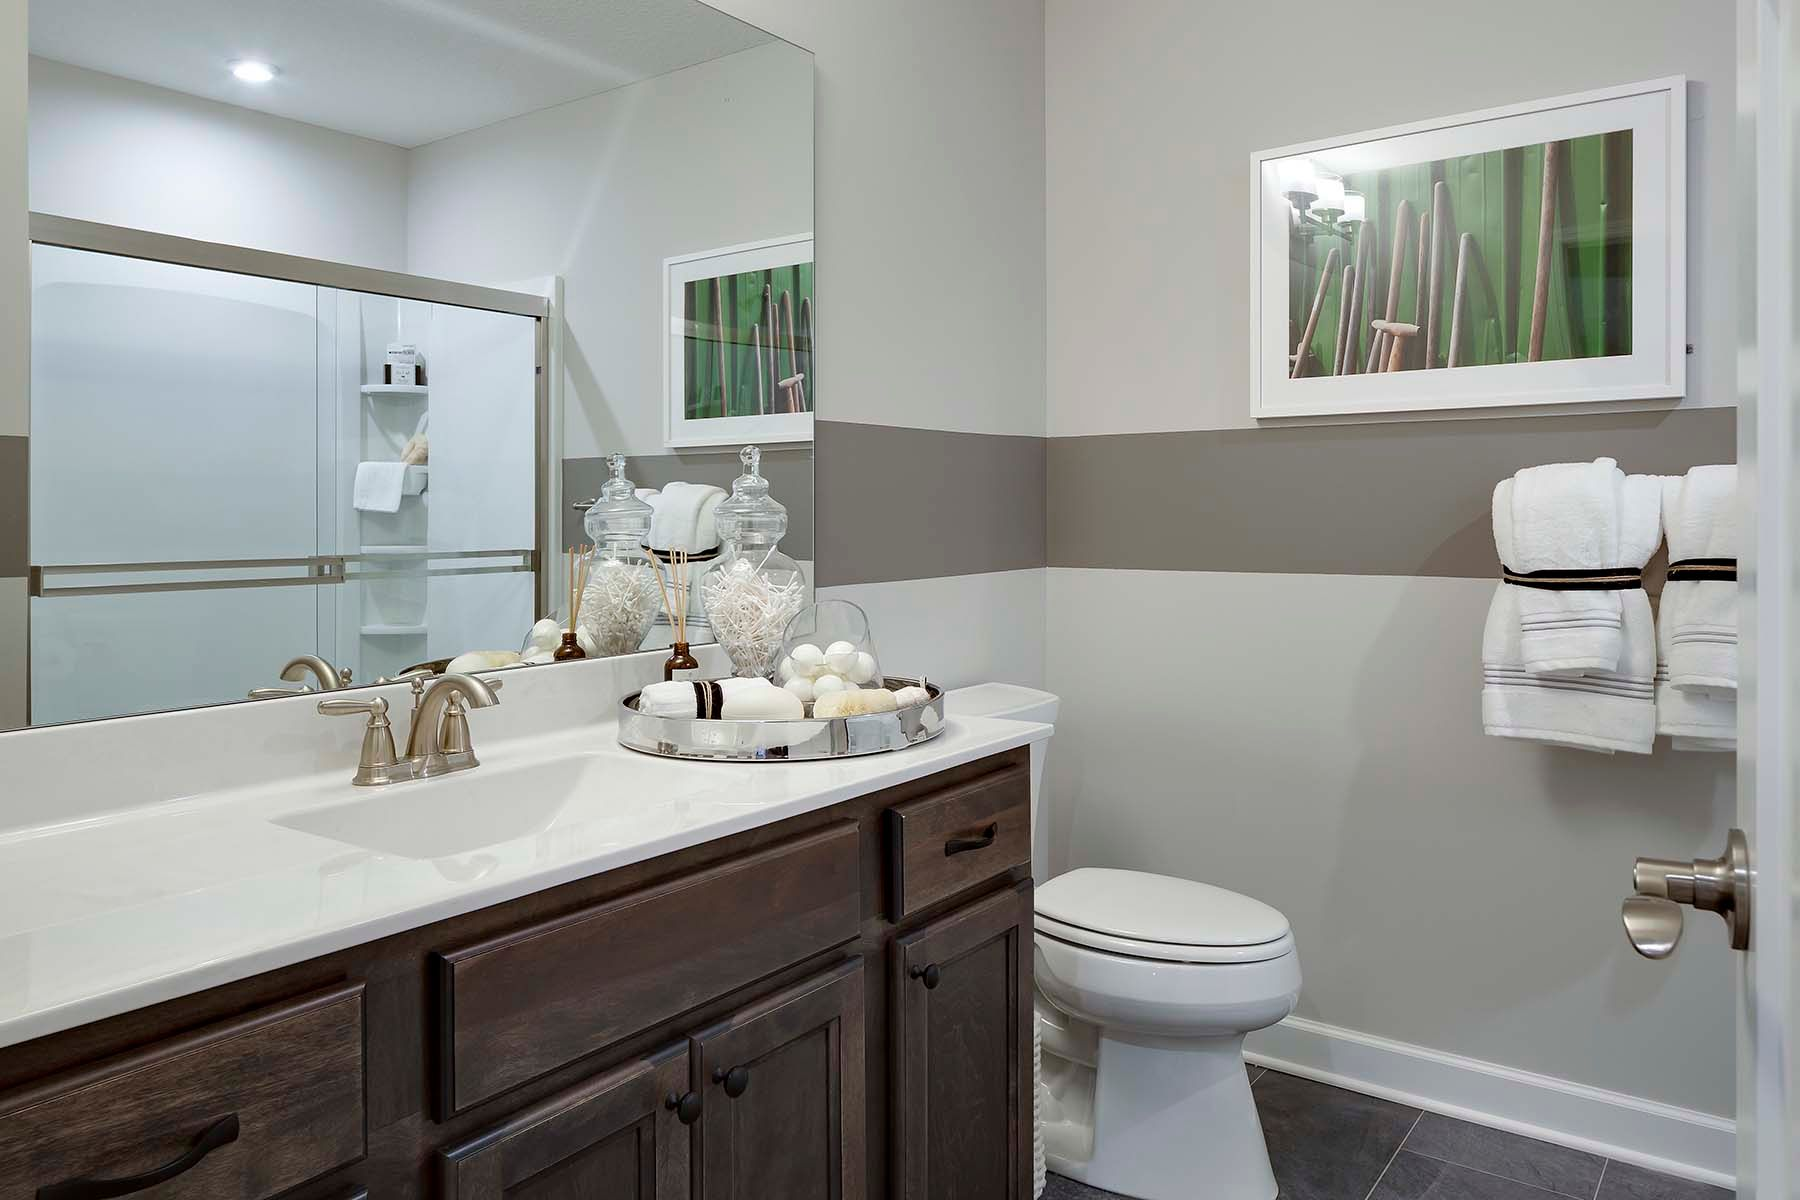 Bathroom featured in the Sycamore By M/I Homes in Minneapolis-St. Paul, MN